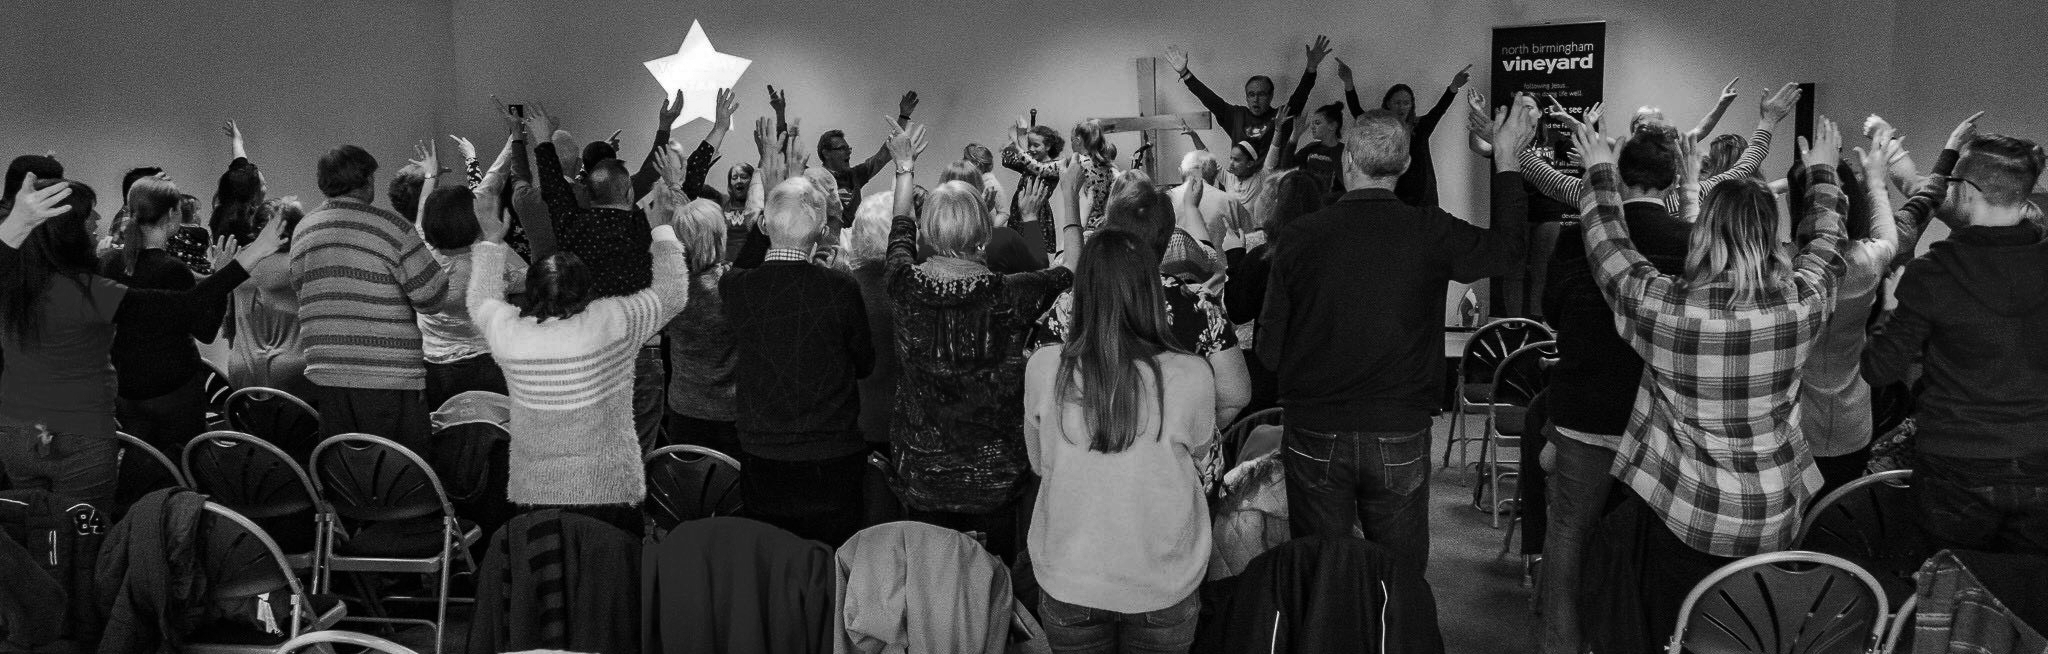 FIRST TIME HERE? - If you are looking for a church, then we would love you to join us!